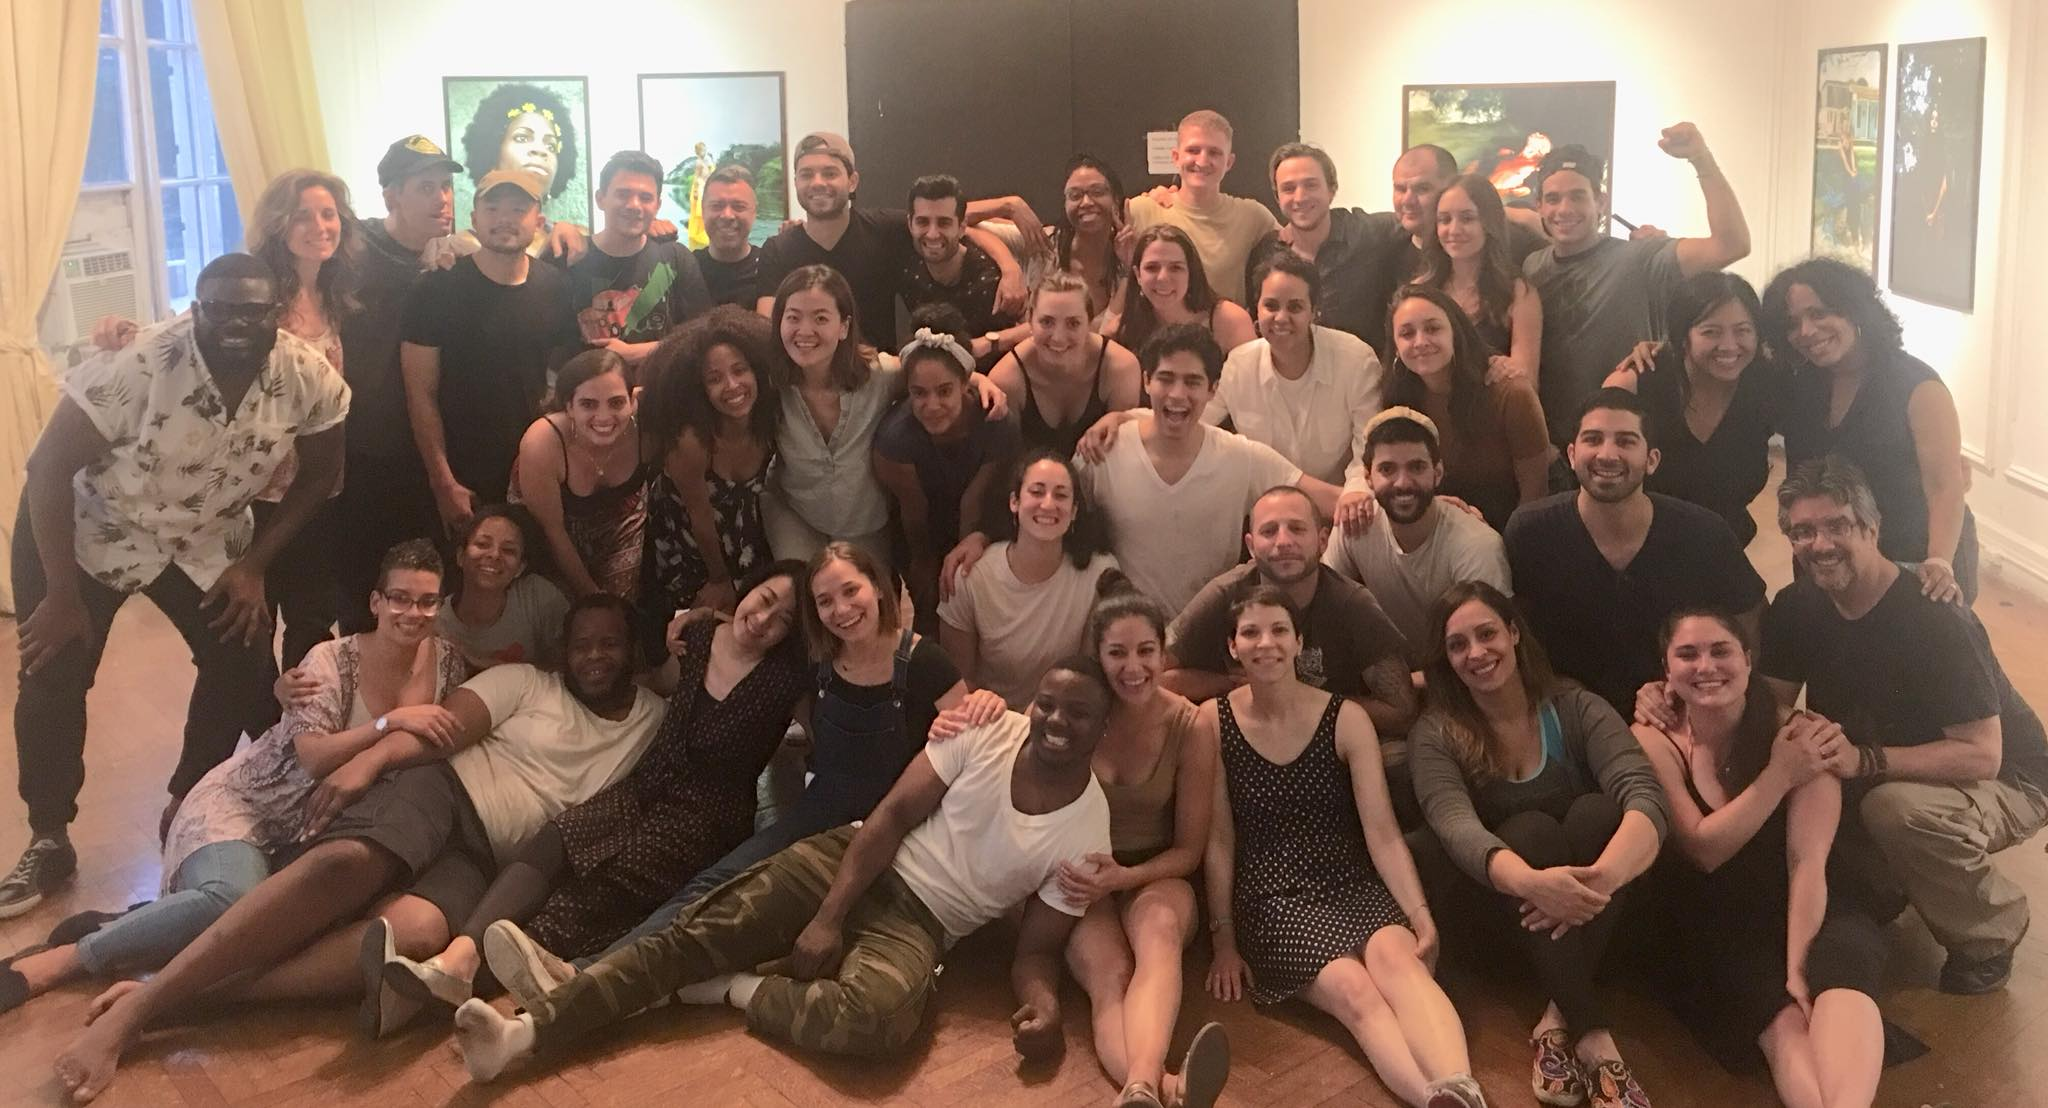 LAByrinthIntensiveEnsemble - Had an incredible week of creating and loving and learning!World, watch out for all of these artists coming at you.